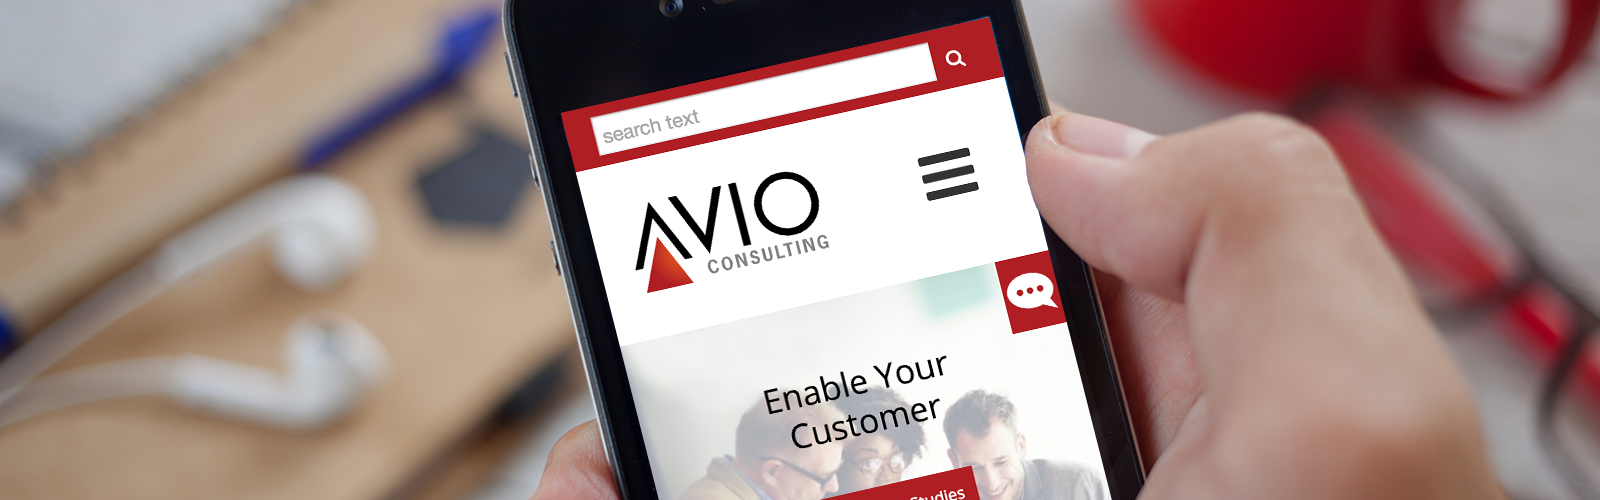 AVIO Consulting, An Interactive Experience   Drupal com